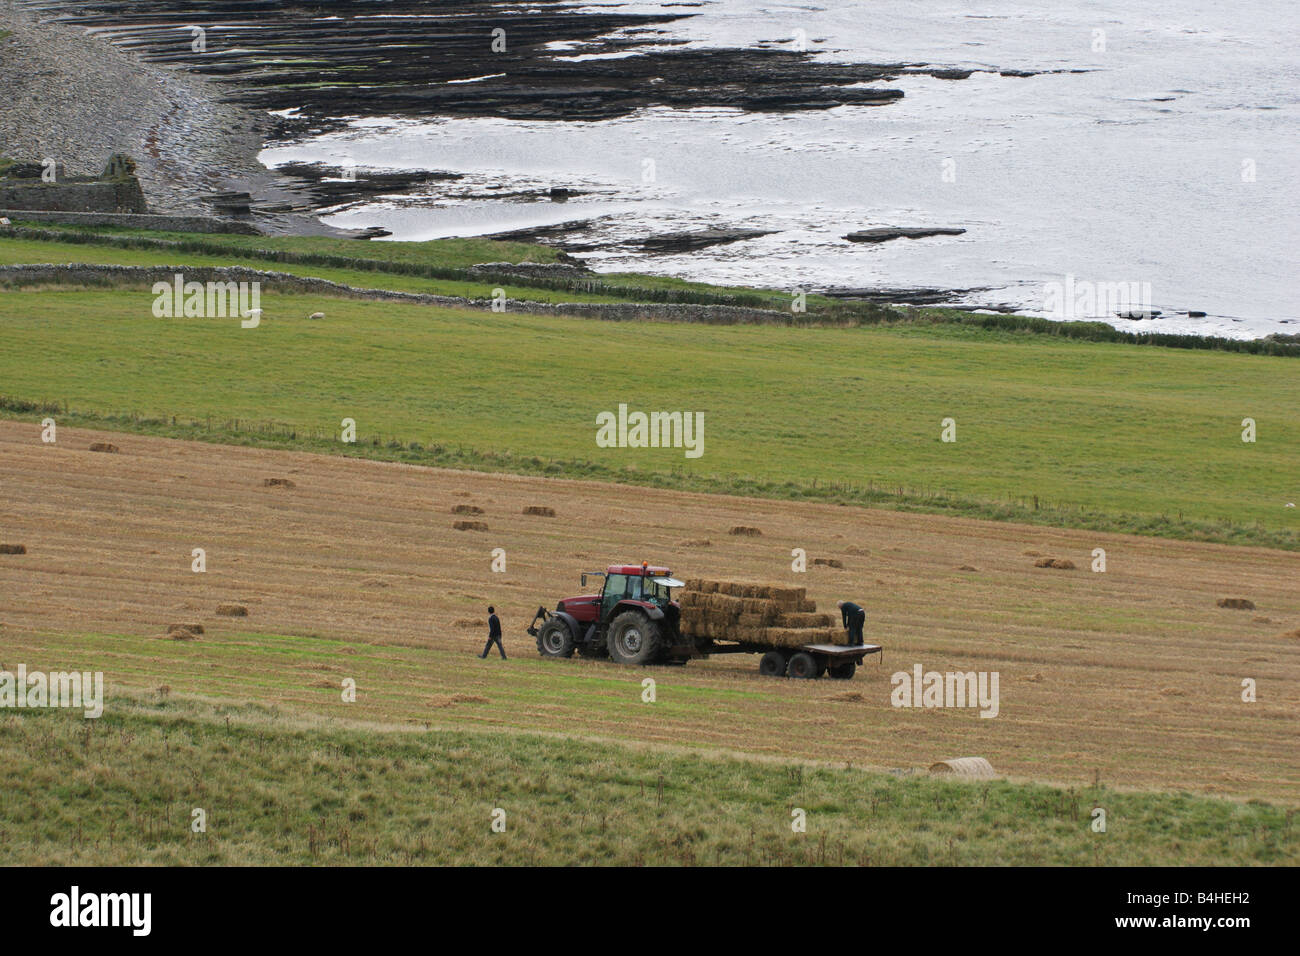 Harvest time at Westness on the island of Rousay, Orkney, Scotland - Stock Image